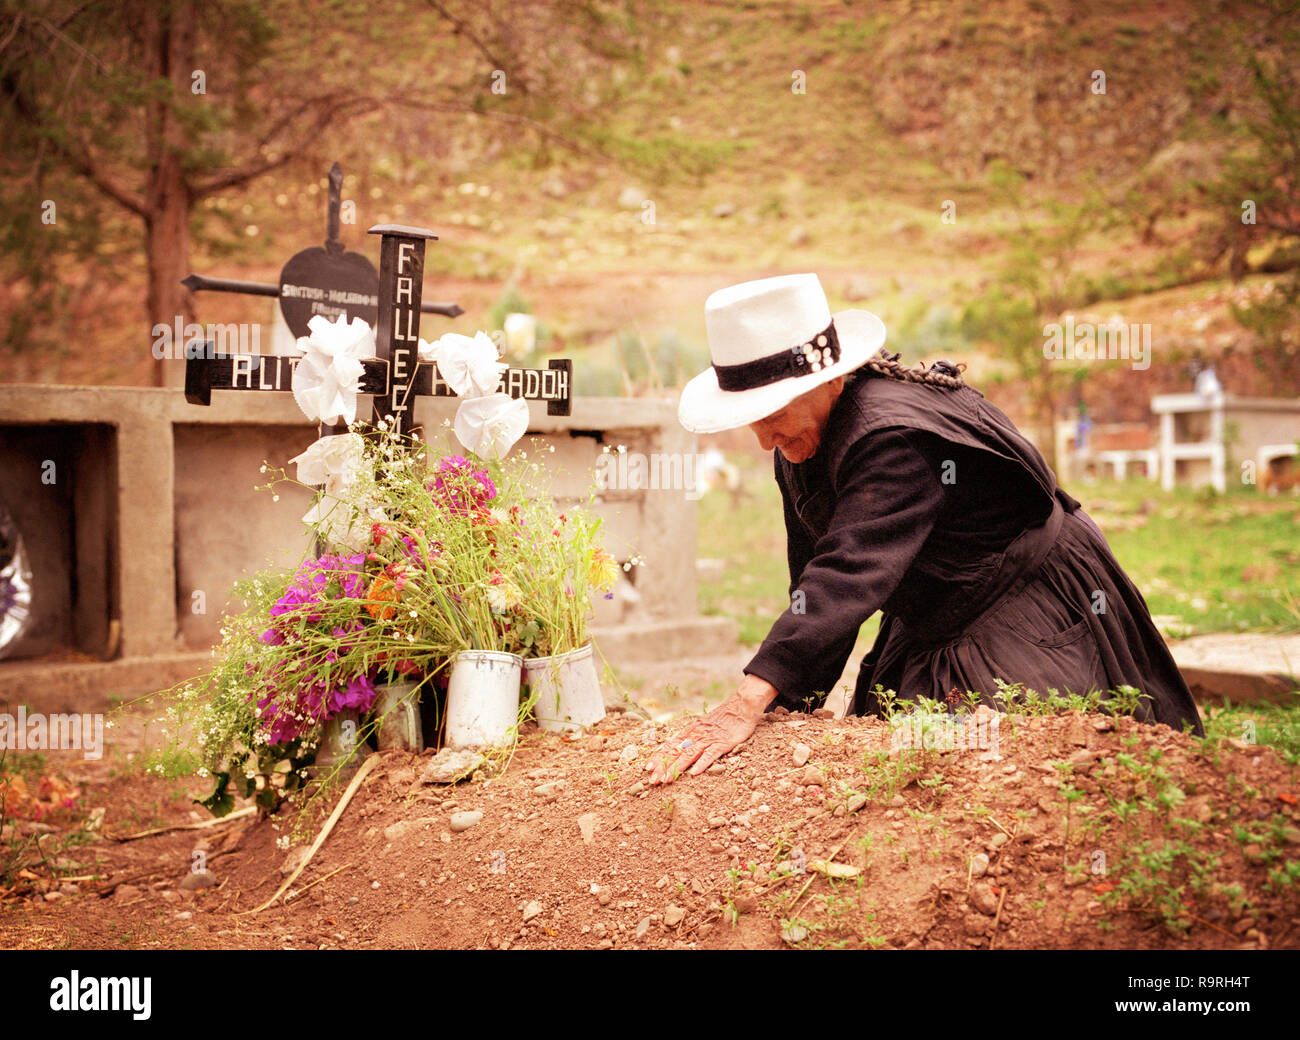 A mature woman weeps beside her beloveds grave. - Stock Image